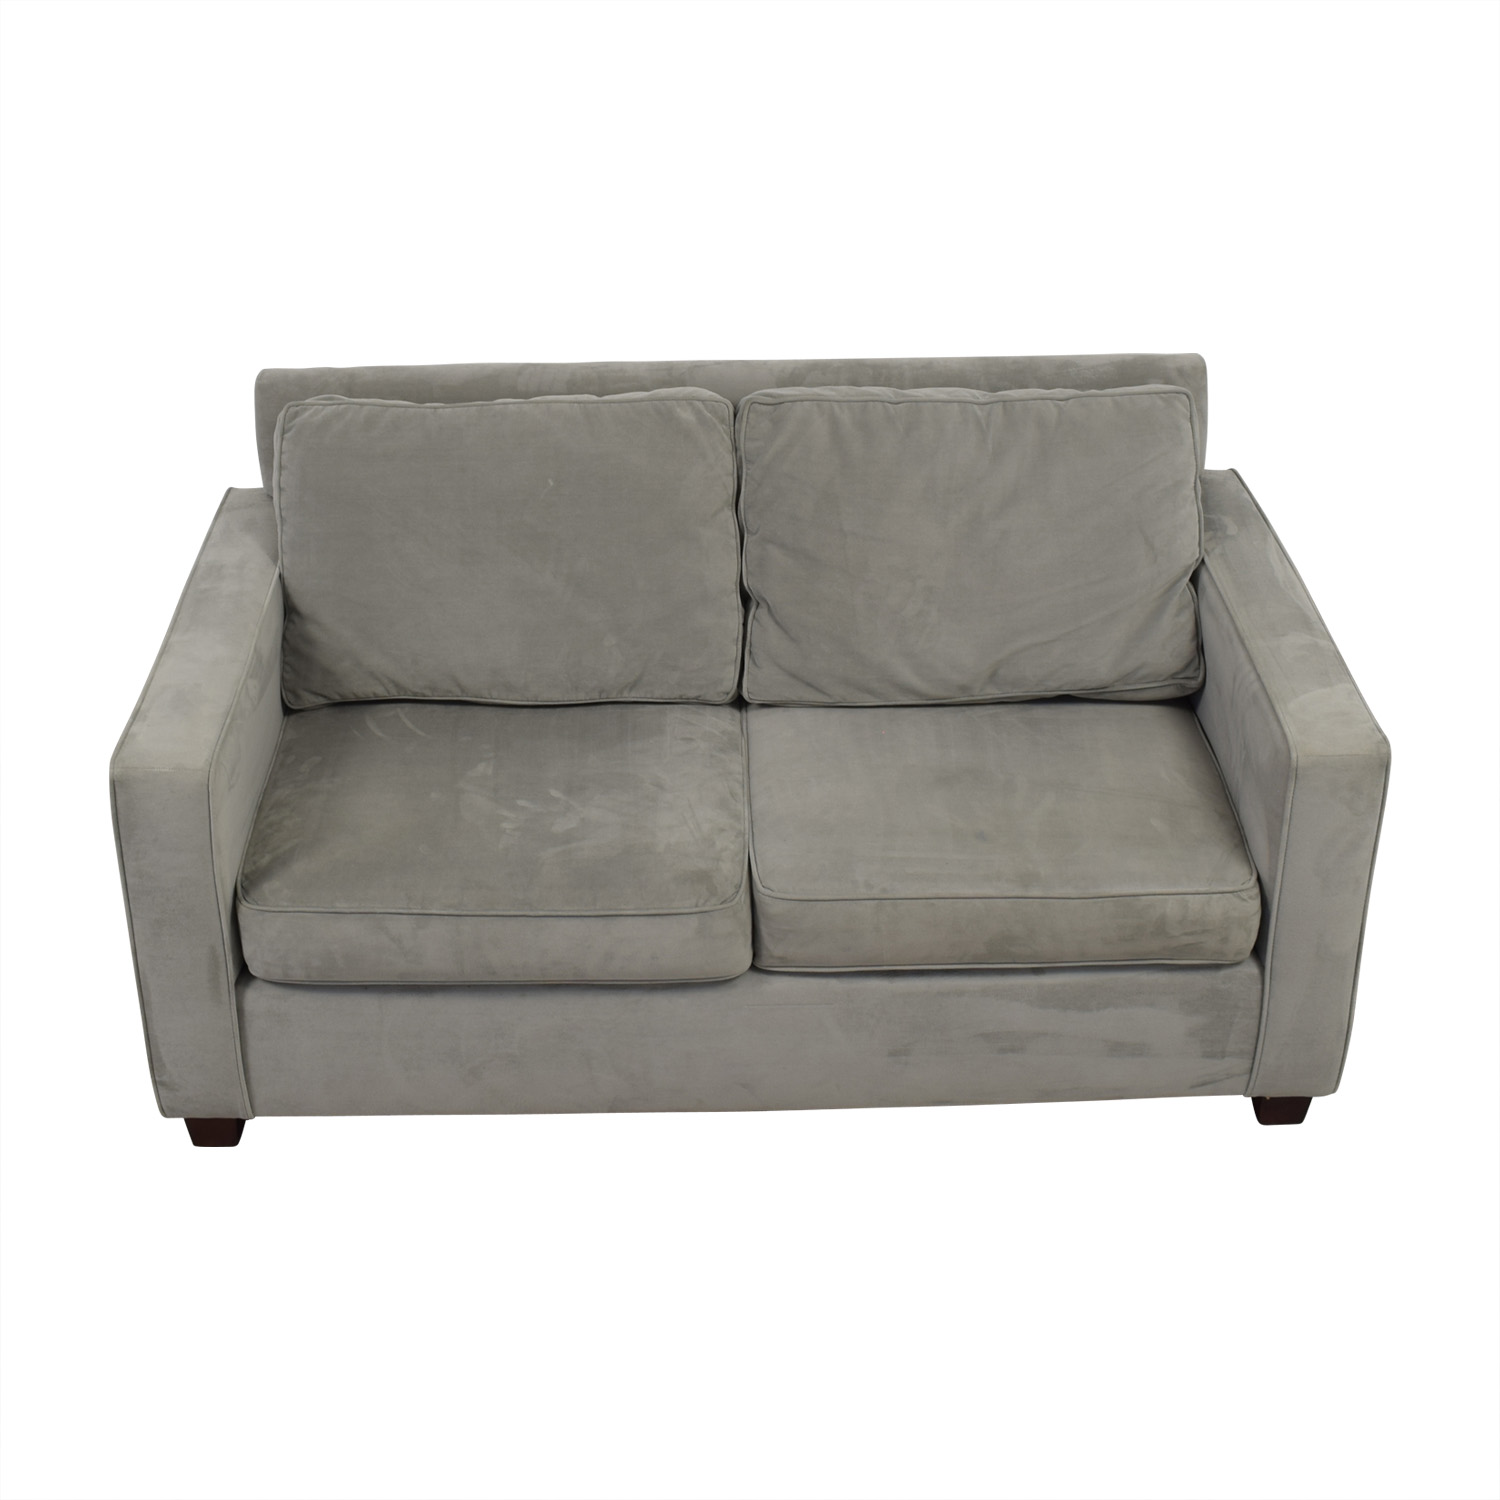 West Elm Henry Velvet Dove Grey Loveseat West Elm